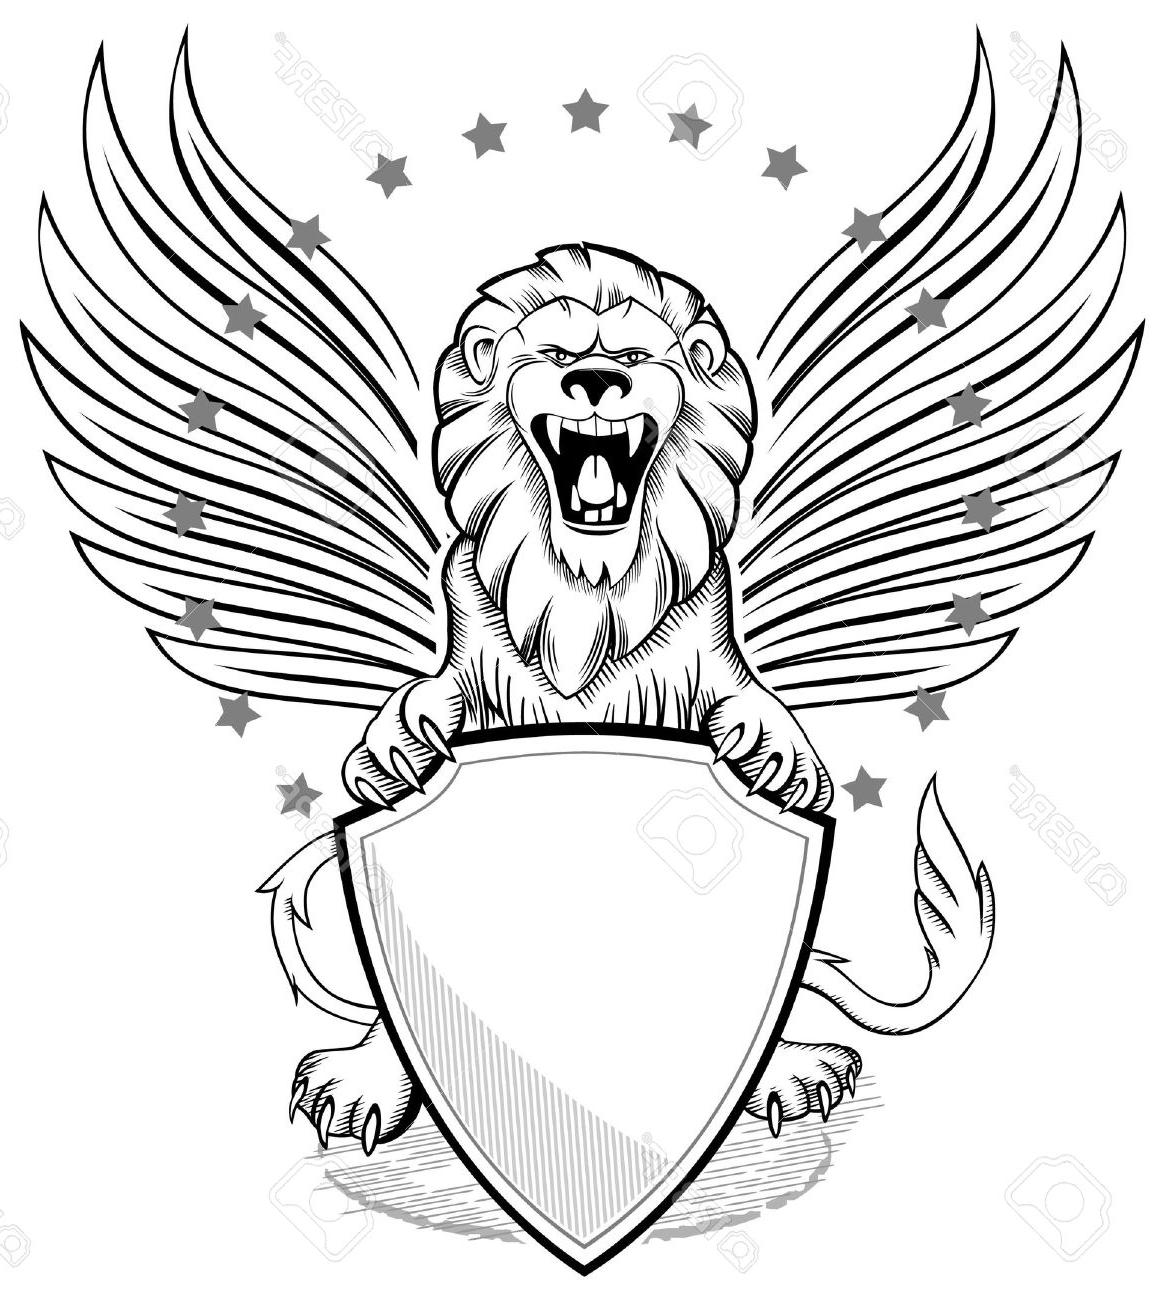 1165x1300 Best 15 Roaring Winged Lion With Shield Insignia Stock Vector